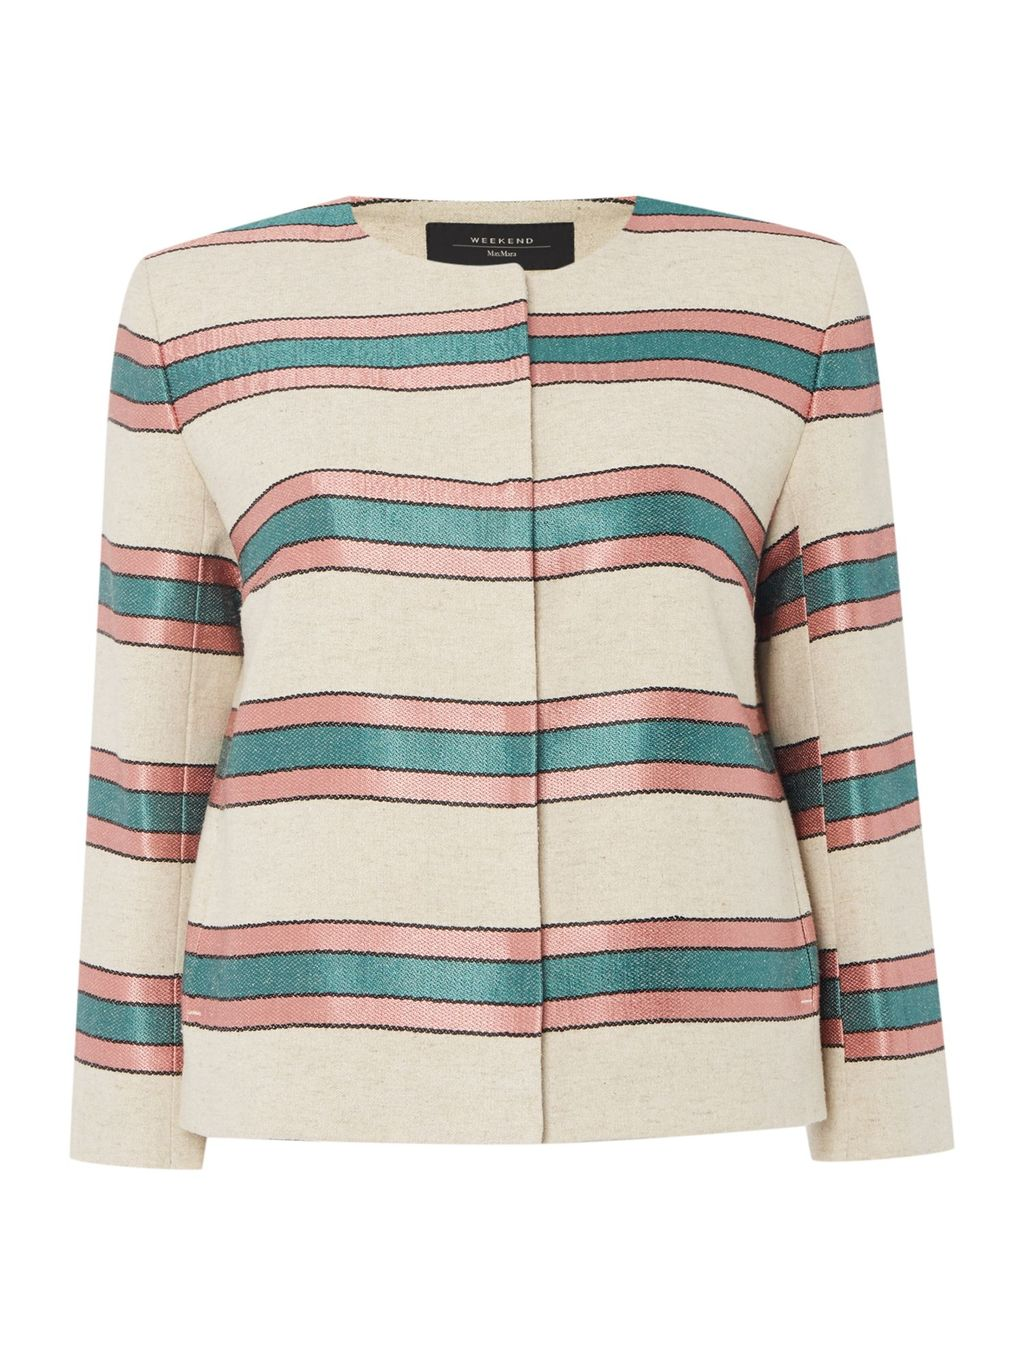 Burano Long Sleeve Stripe Jacket, Beige - pattern: horizontal stripes; collar: round collar/collarless; style: boxy; predominant colour: ivory/cream; secondary colour: teal; length: standard; fit: straight cut (boxy); fibres: silk - mix; occasions: occasion, creative work; sleeve length: 3/4 length; sleeve style: standard; texture group: structured shiny - satin/tafetta/silk etc.; collar break: high; pattern type: fabric; pattern size: standard; multicoloured: multicoloured; season: s/s 2016; wardrobe: highlight